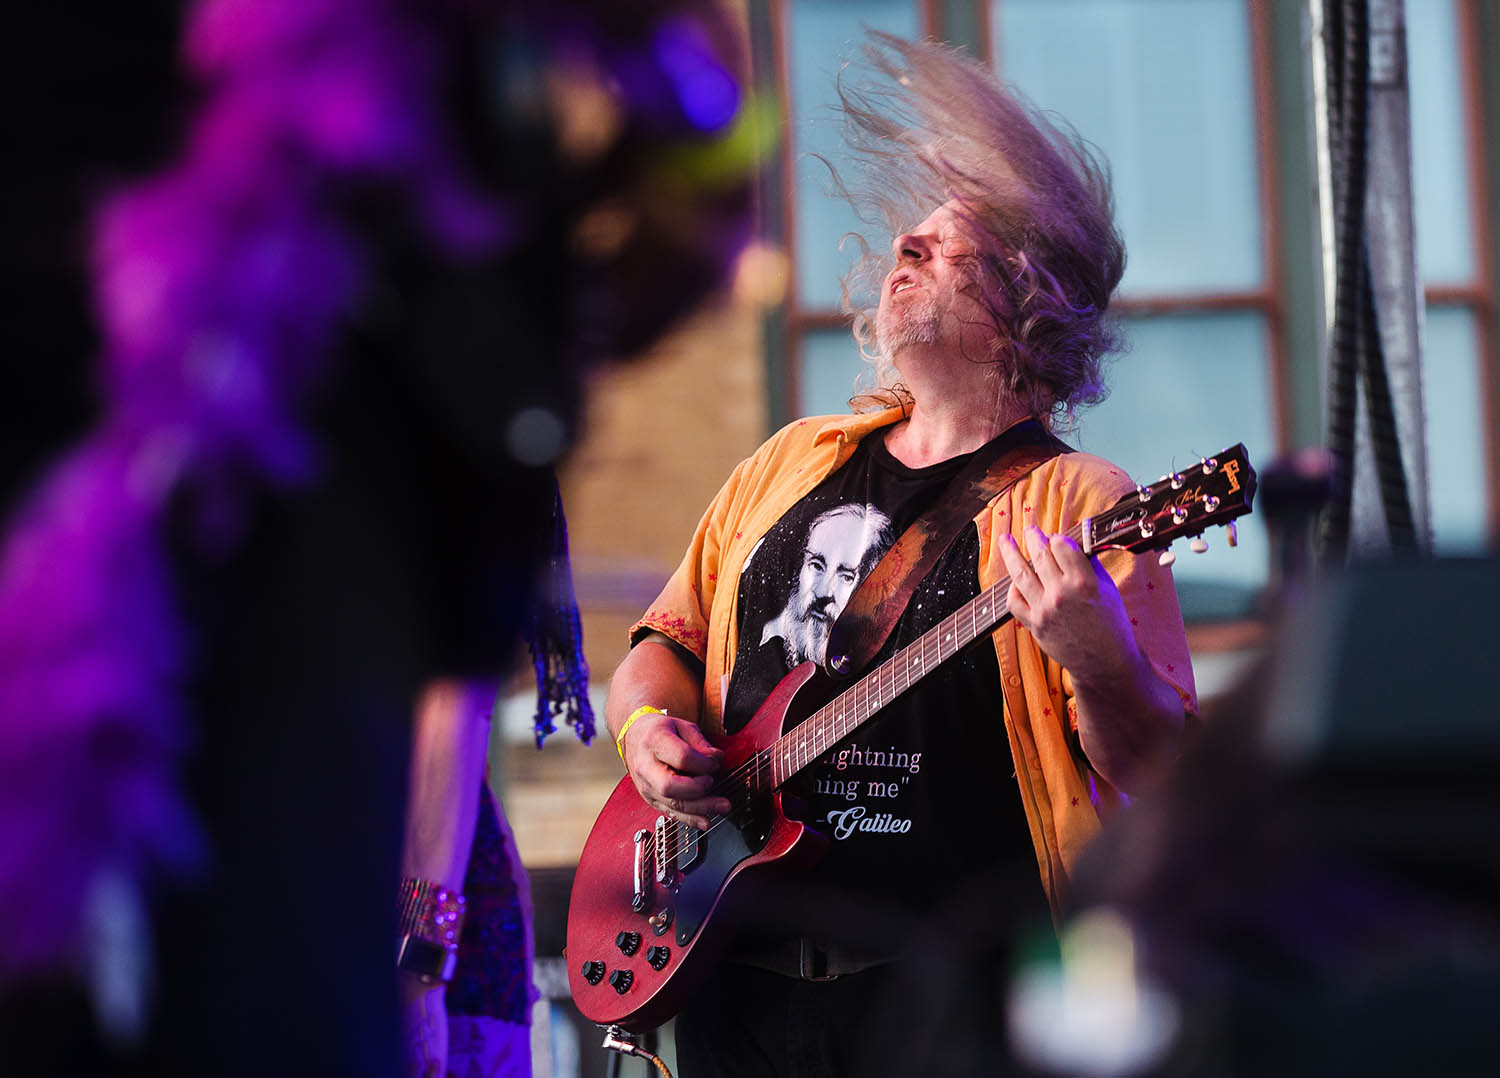 Carl Akers jams with Purple Stardust during the Legacy of Giving Music Festival in downtown Springfield Friday, June 7, 2019. [Ted Schurter/The State Journal-Register]